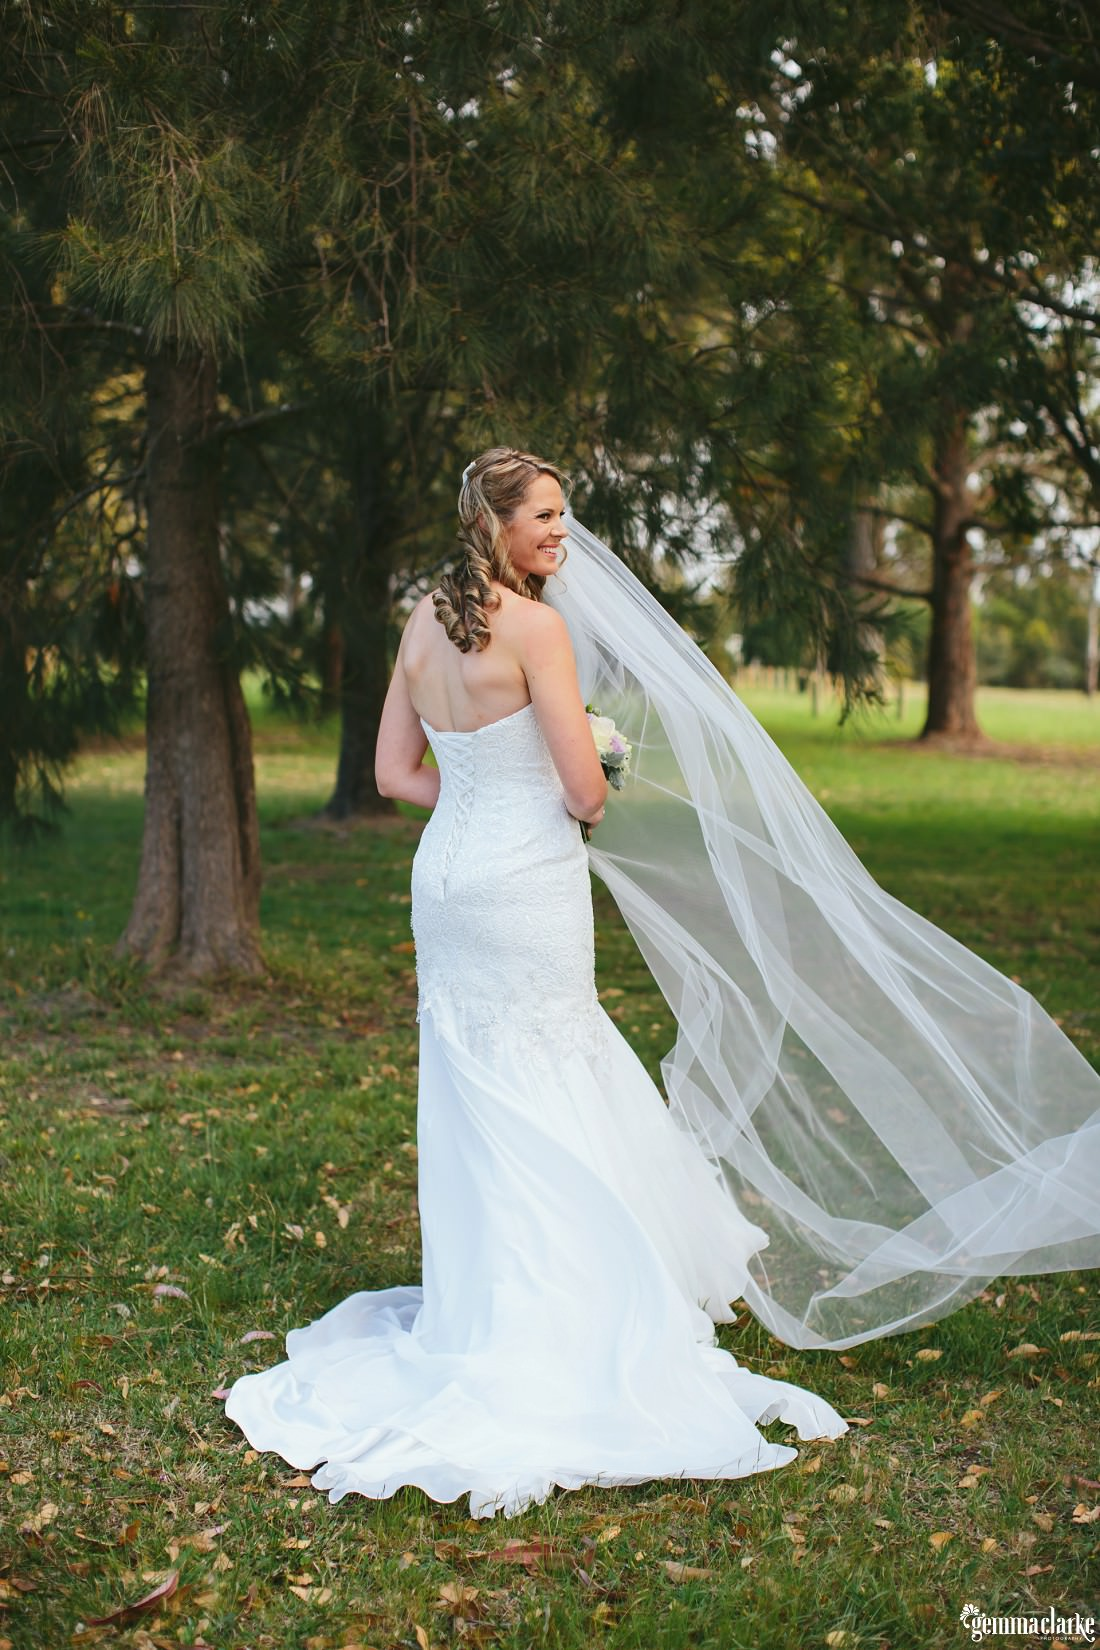 A bride posing in front of some trees, looking back over her shoulder and smiling